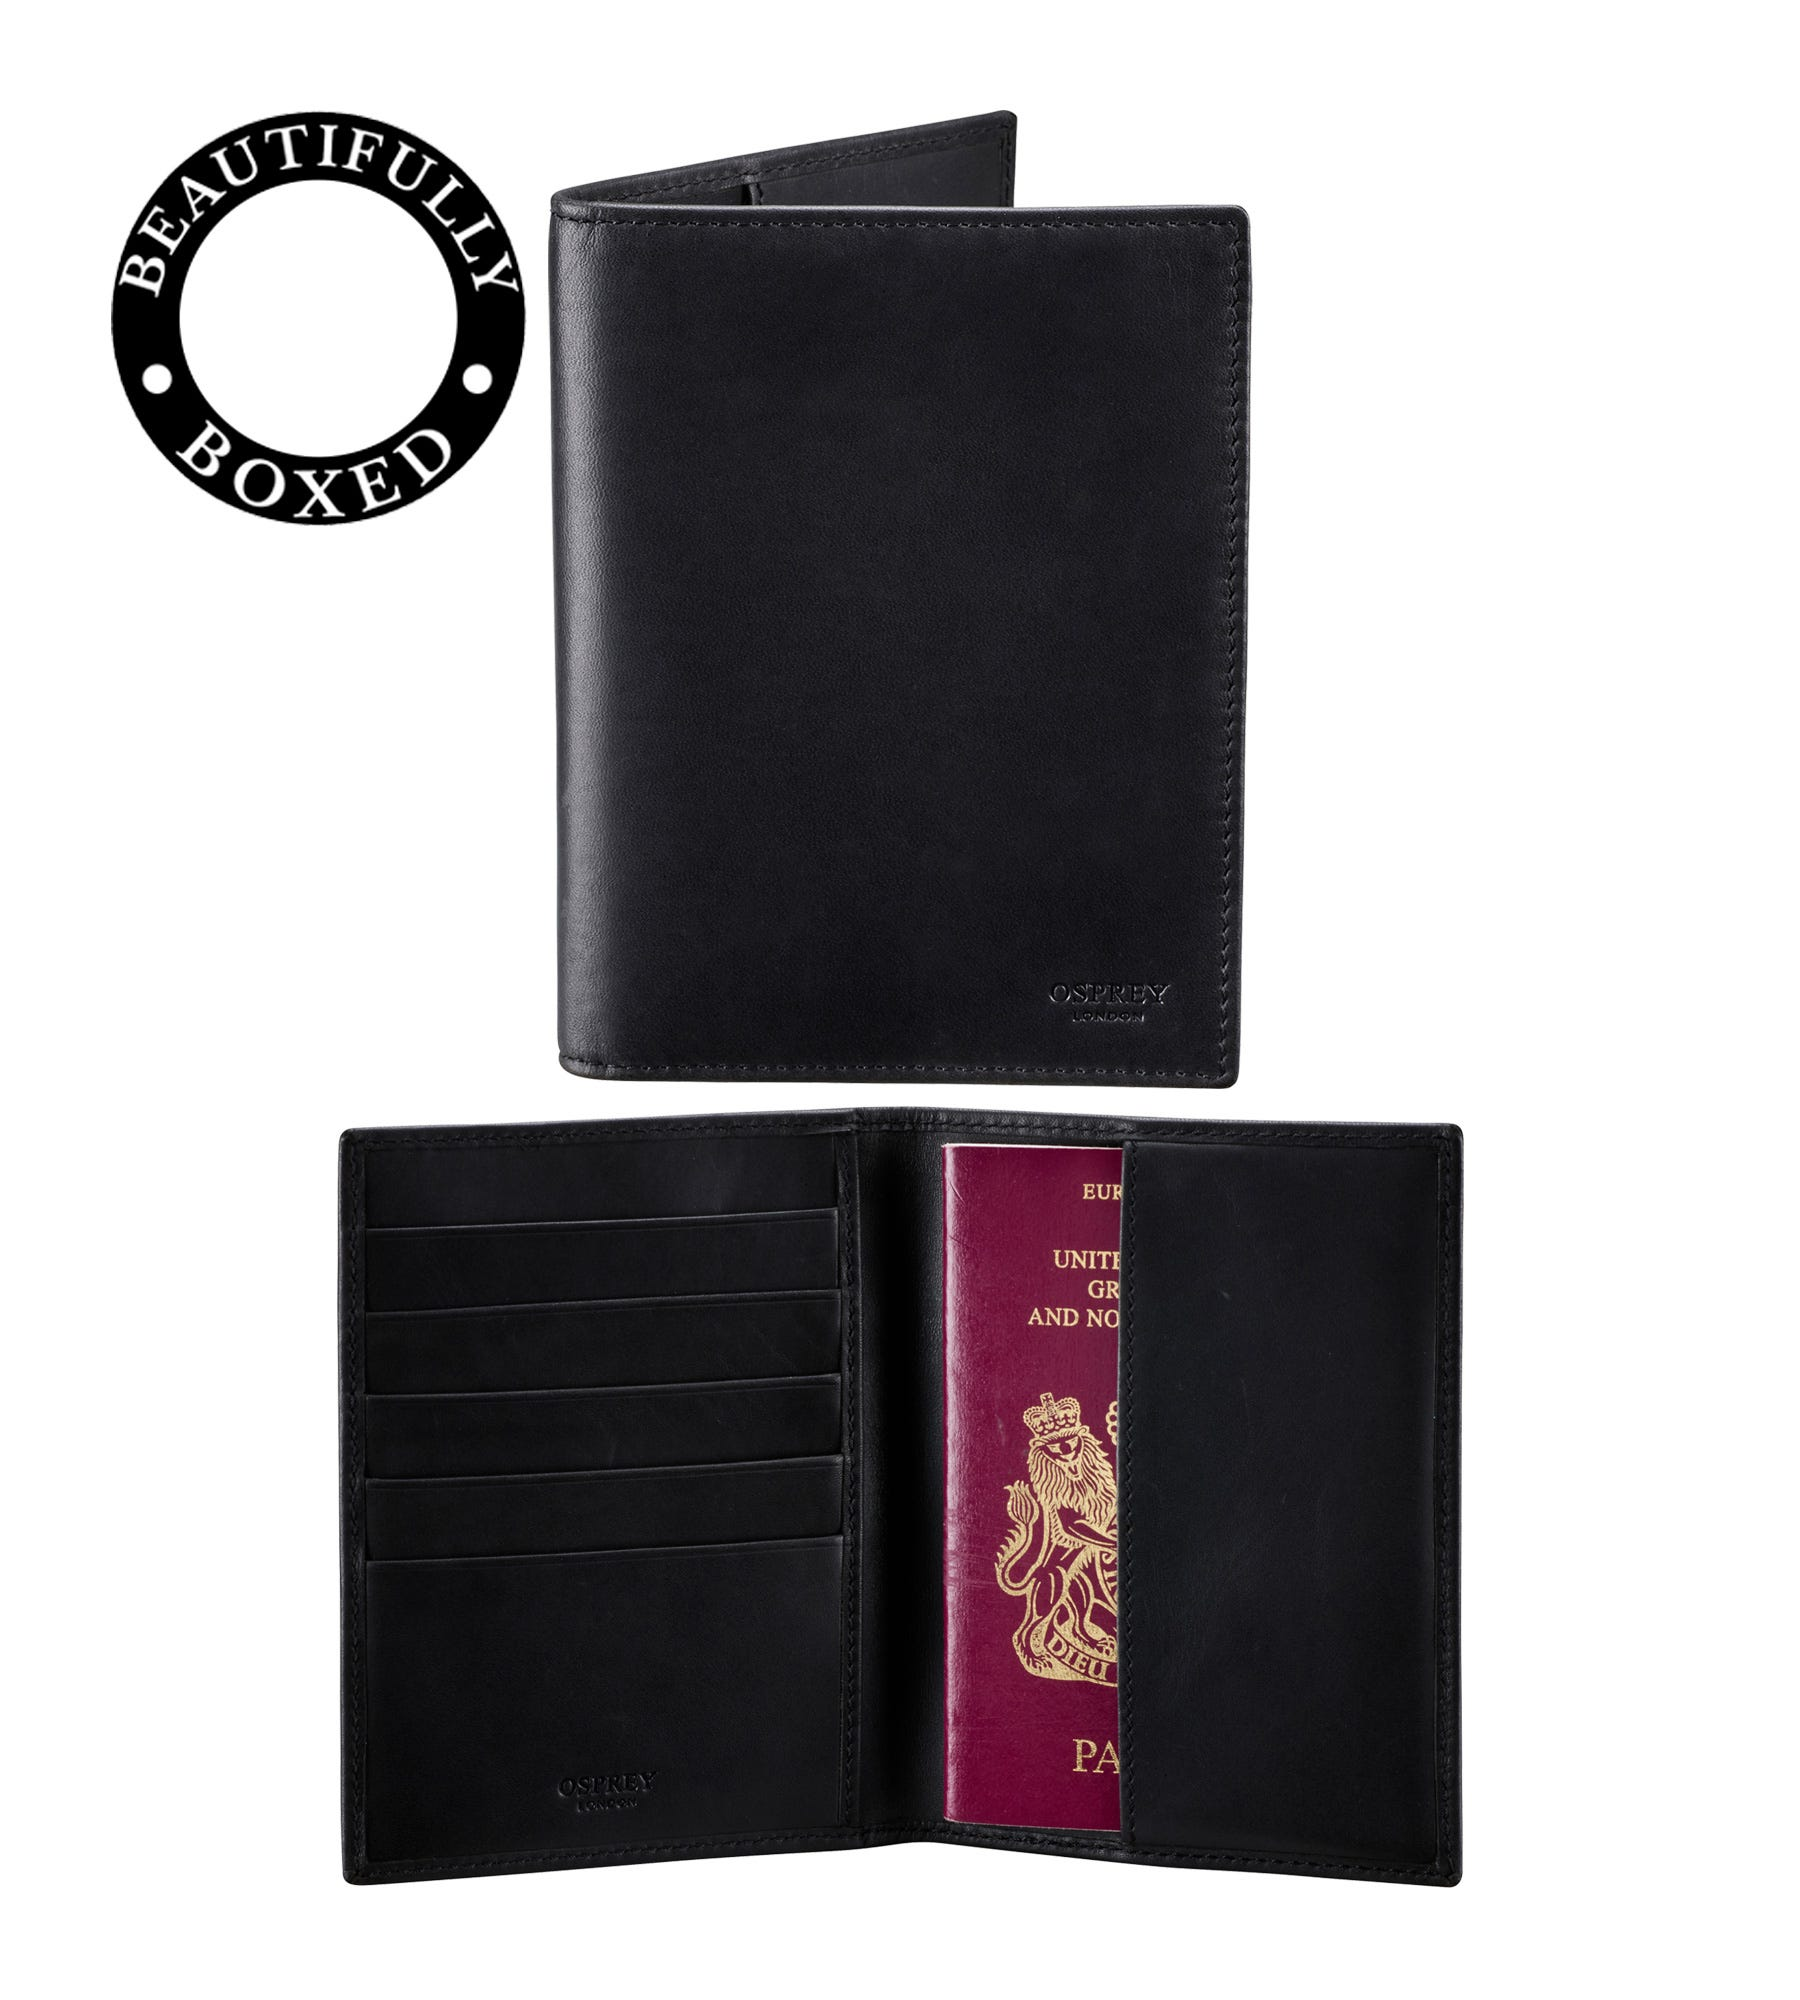 An image of The Pall Mall Leather Passport Cover